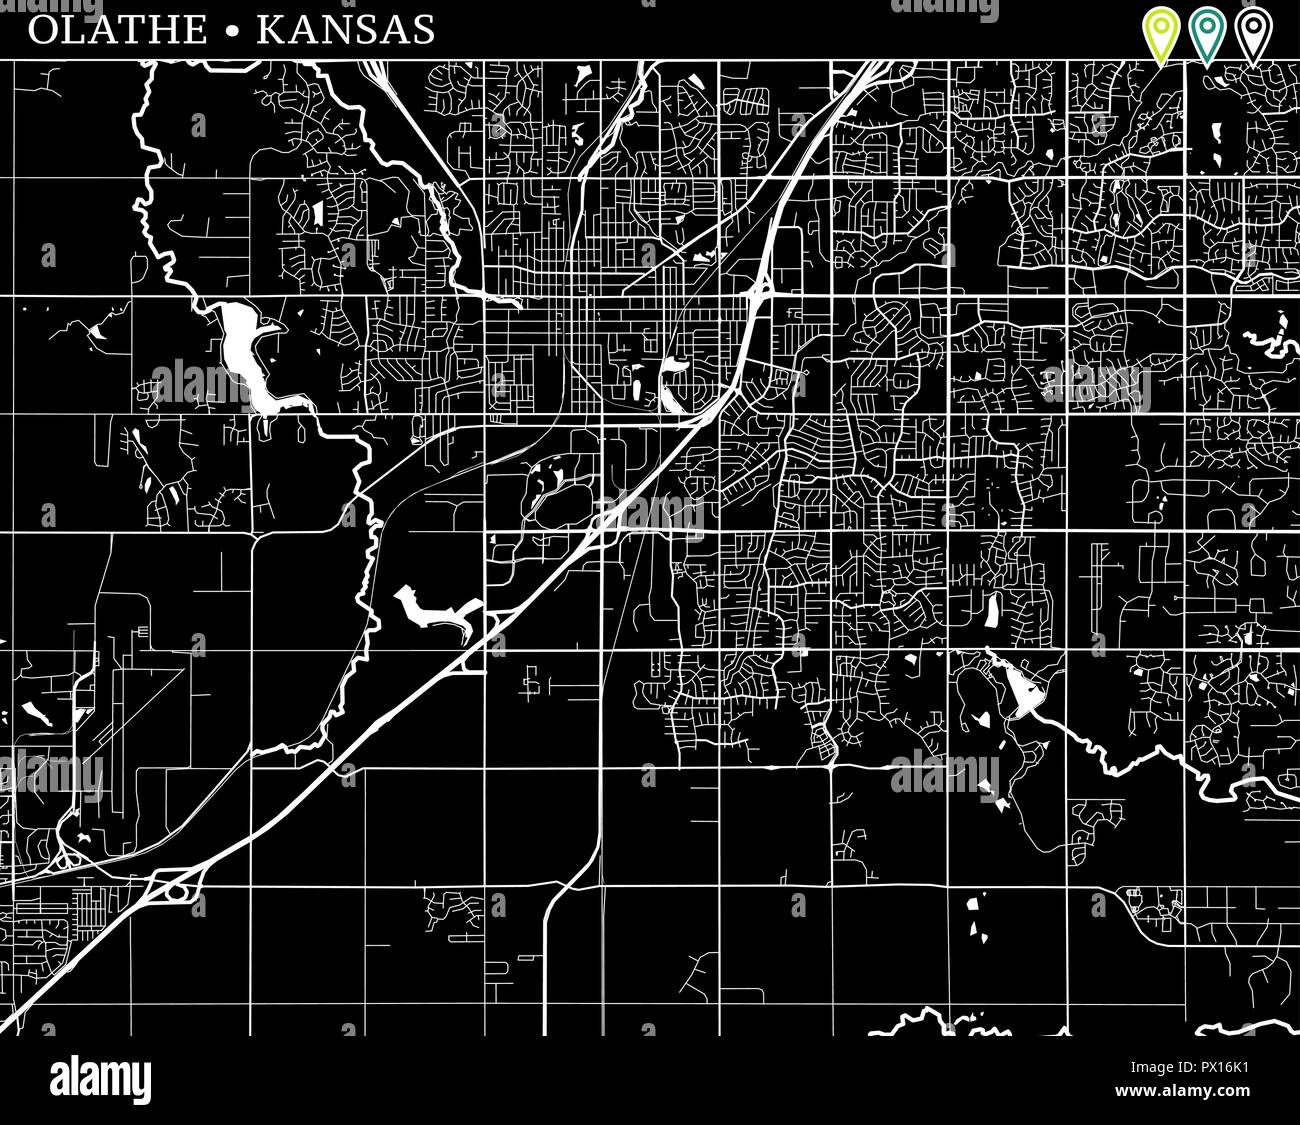 Simple Map Of Olathe Kansas Usa Black And White Version For